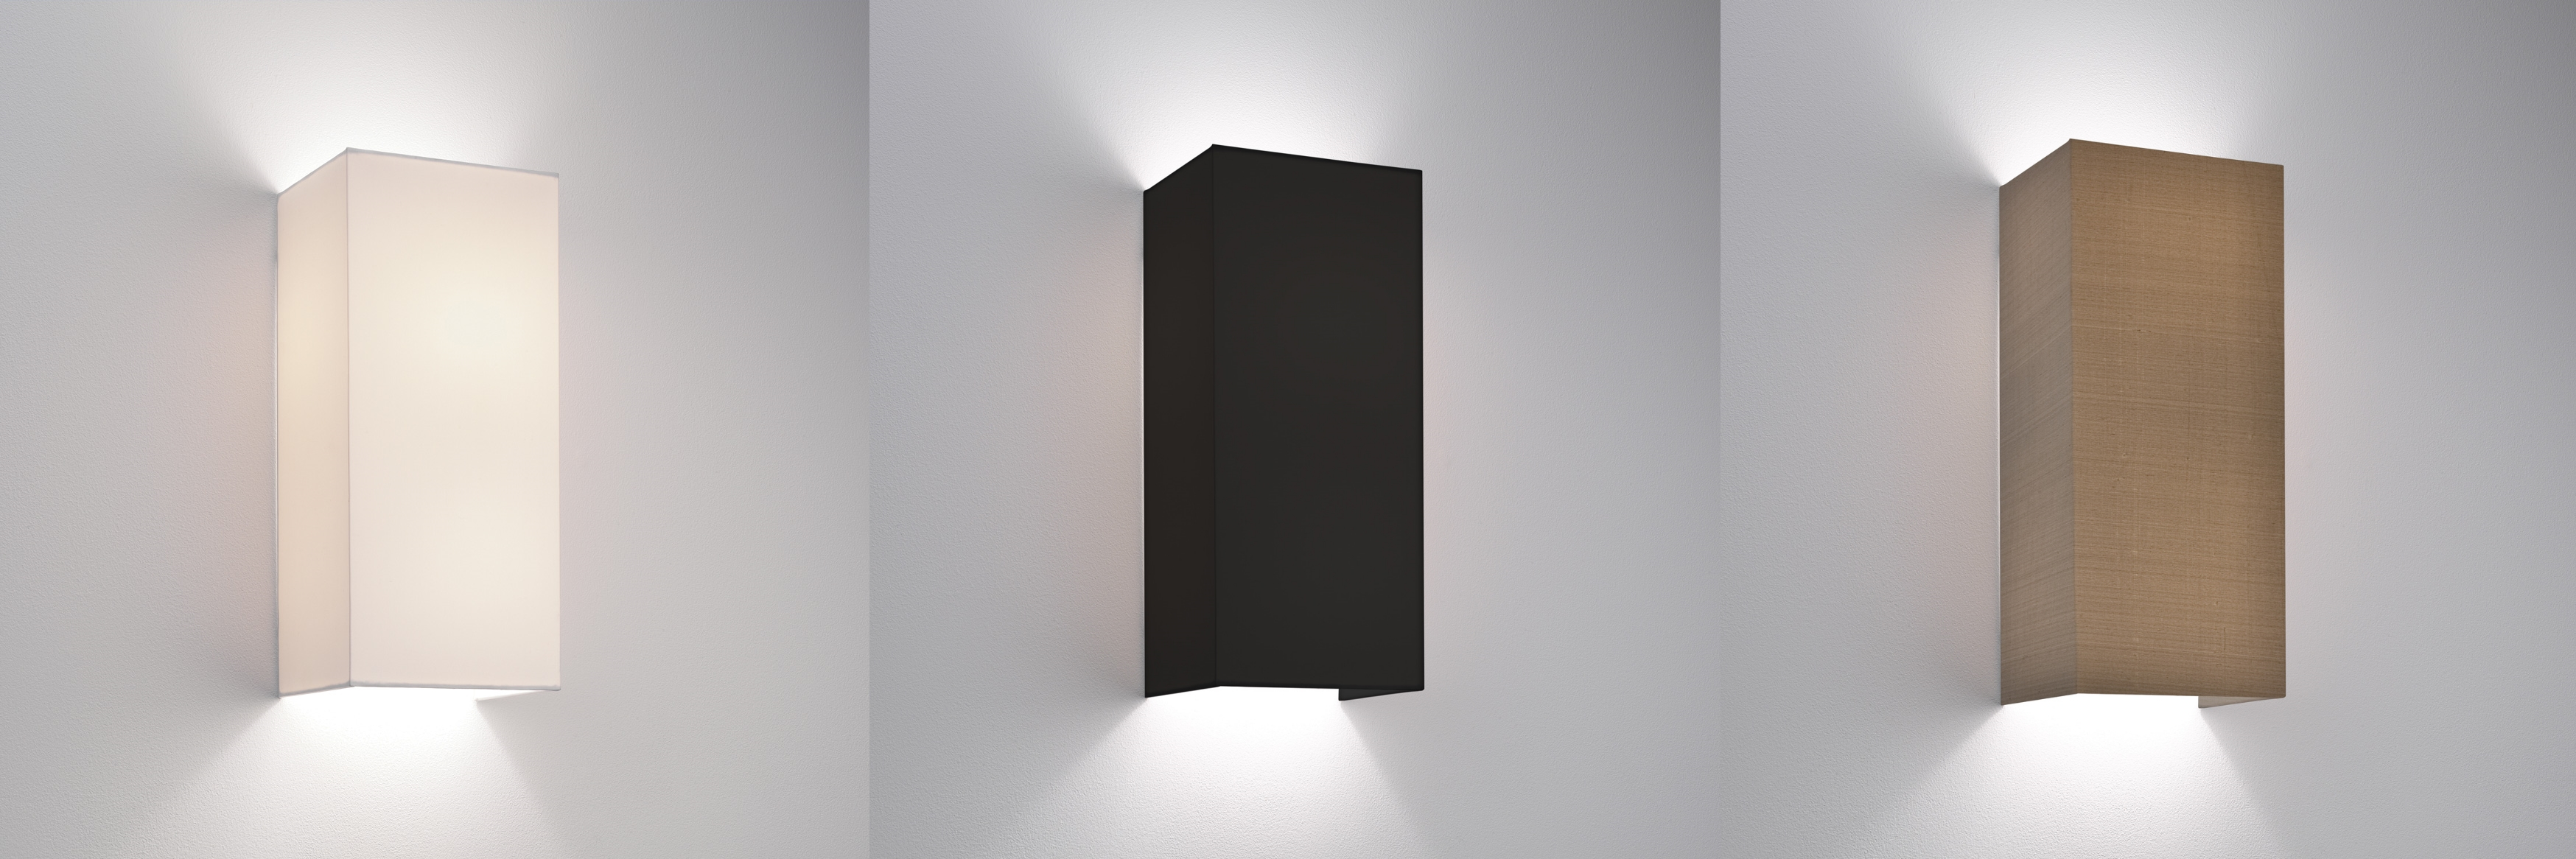 Wall Lamp With Shades : Astro Chuo 380 fabric wall light shade 2x60W E27 white black oyster eBay